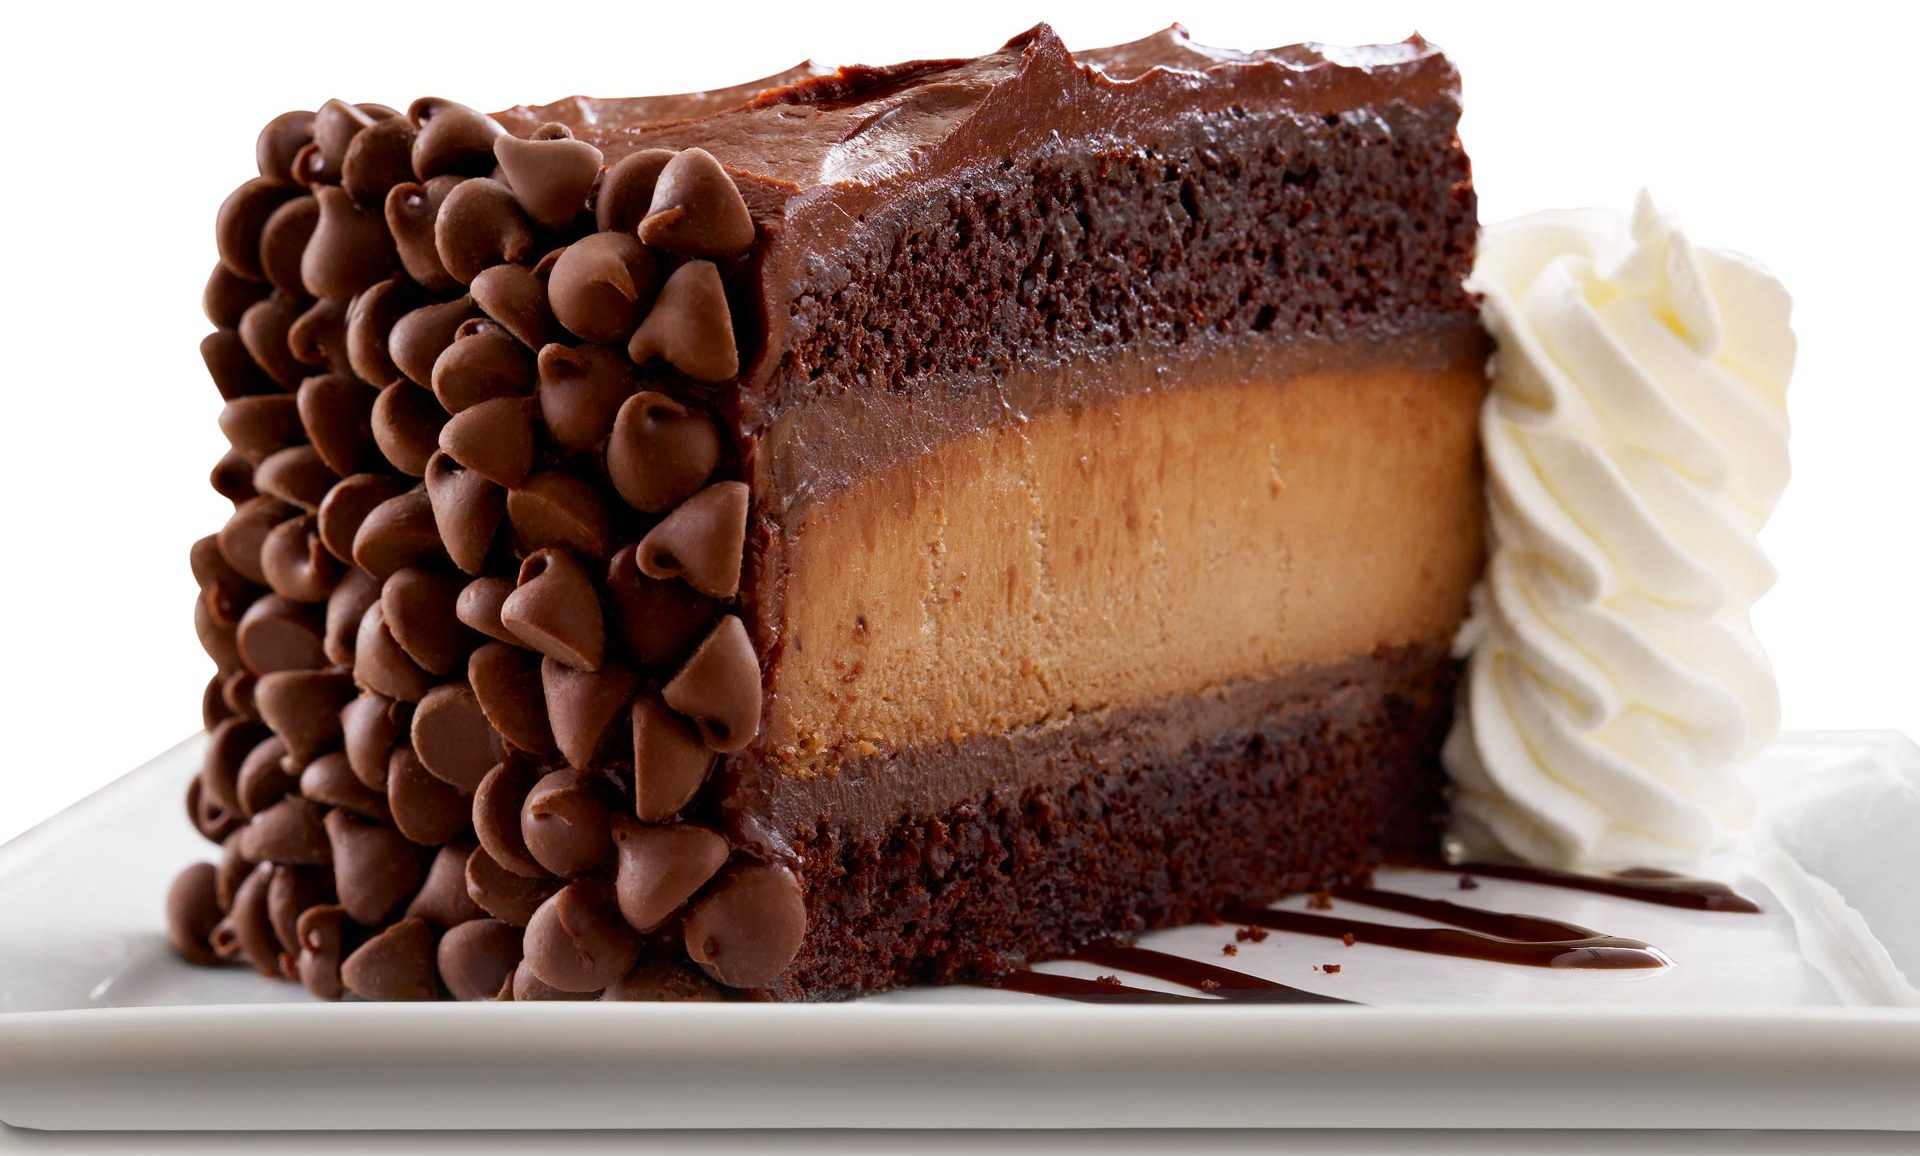 Halloween freebies and deals – The Cheesecake Factory Hershey Bar